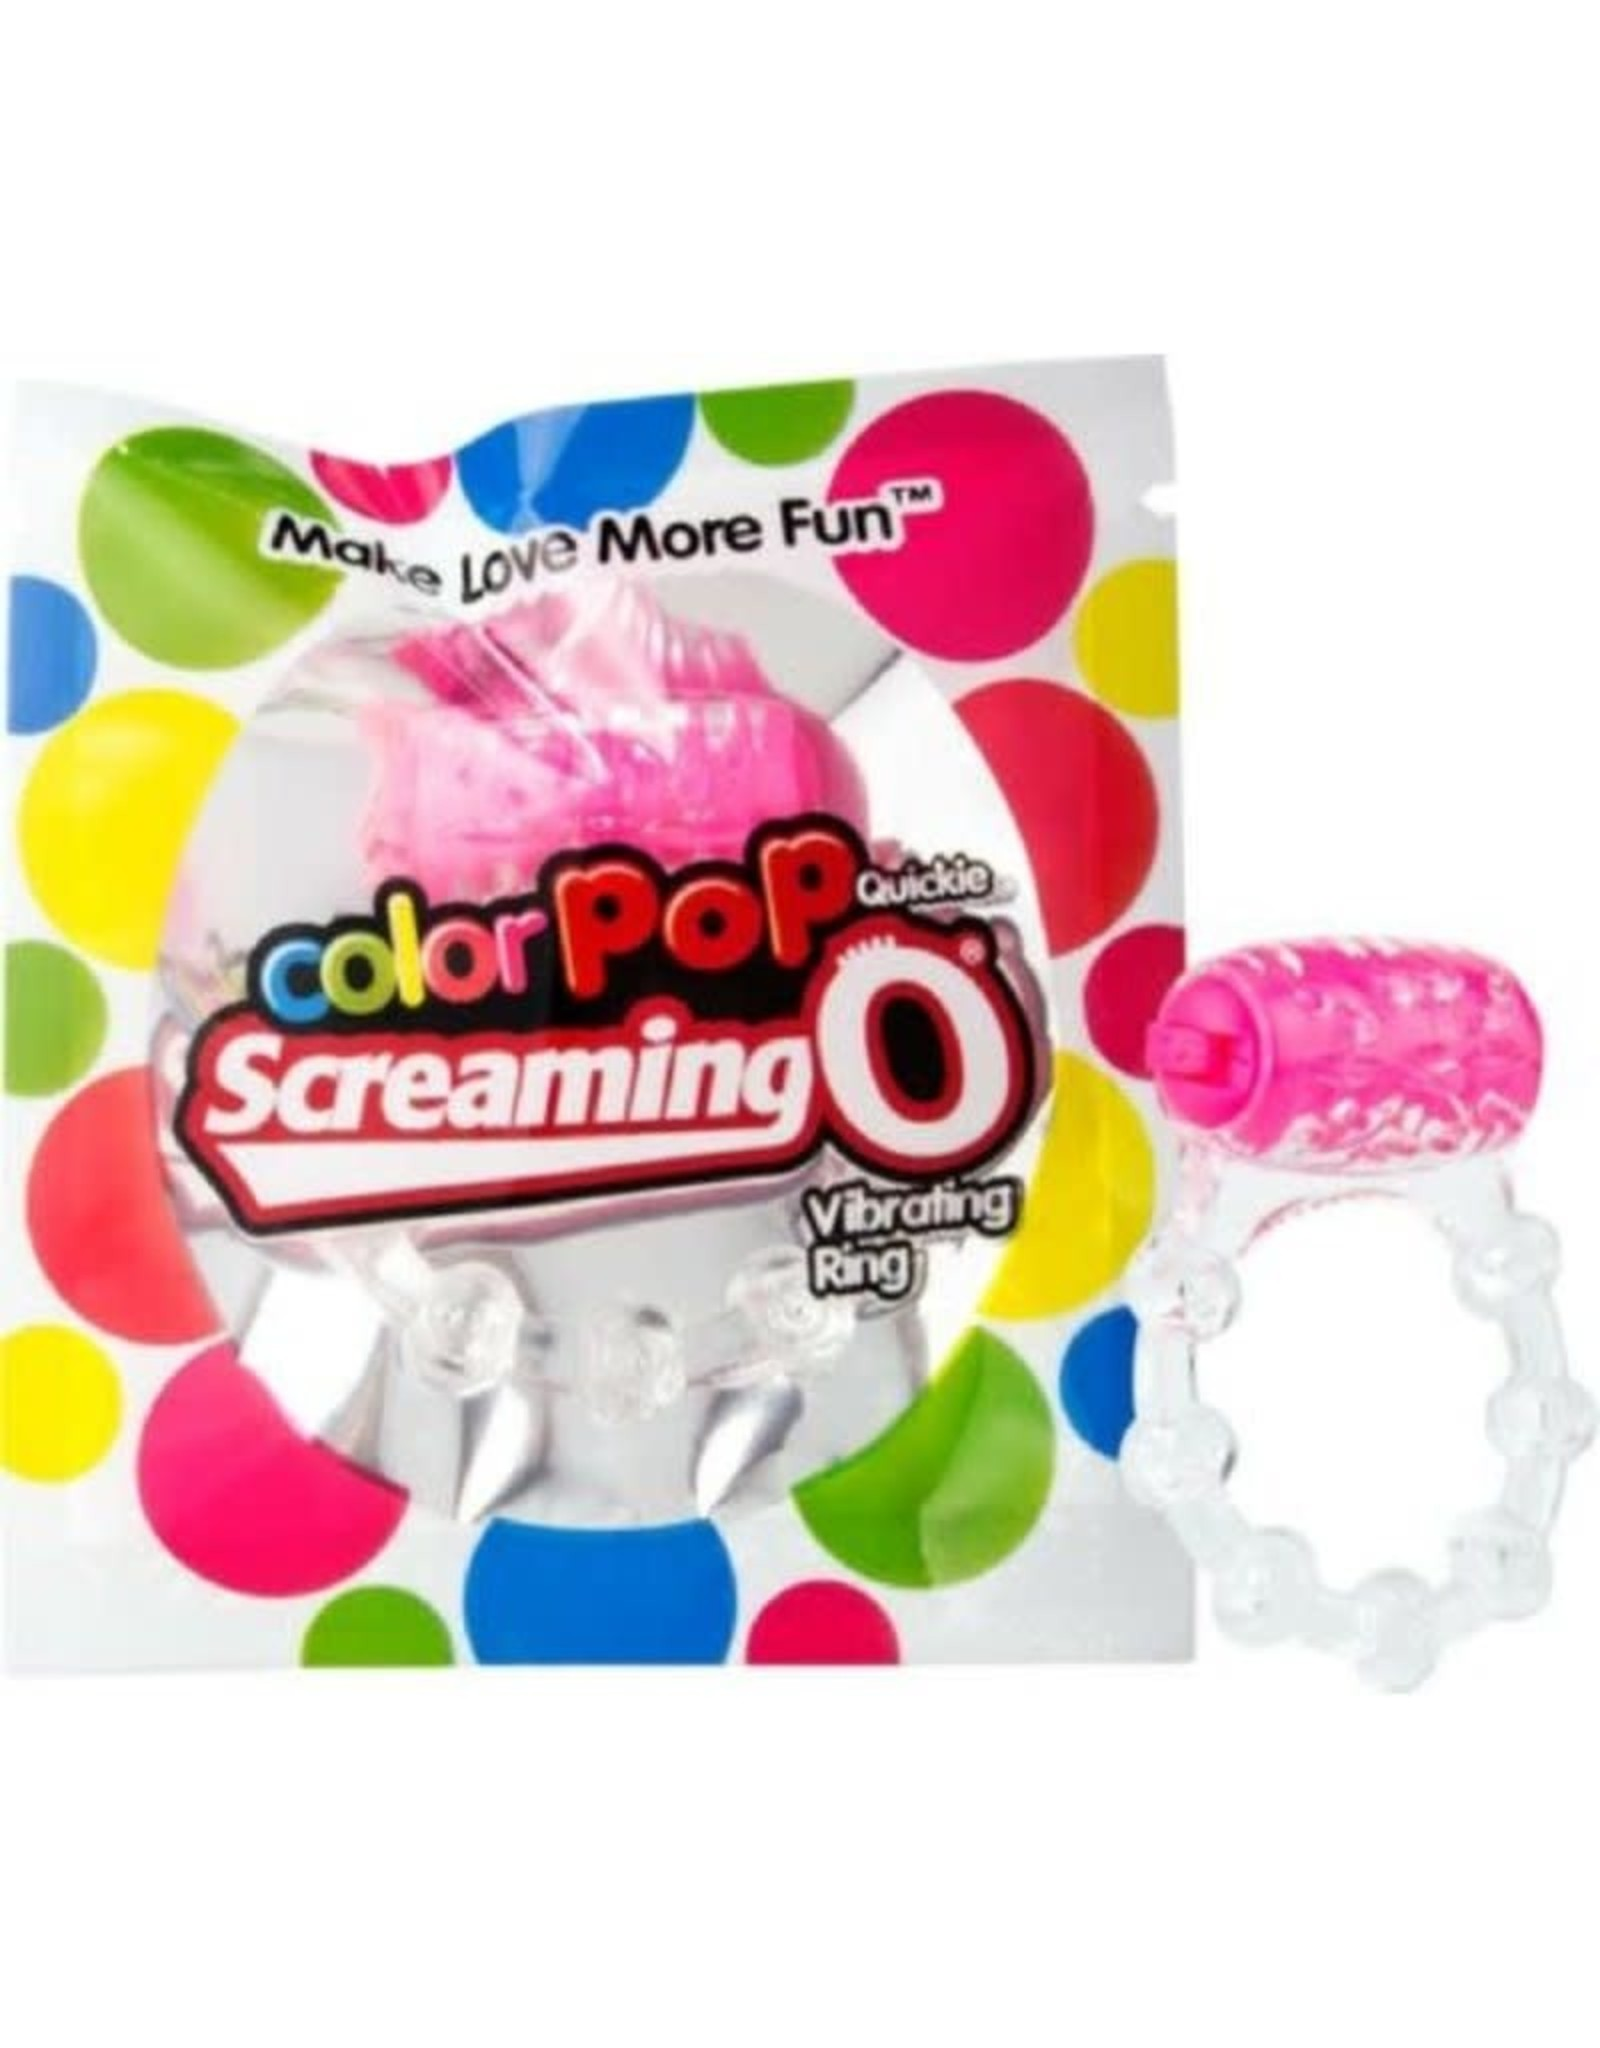 SCREAMING O SCREAMING O - COLOR POP QUICKIE VIBE RING - PINK